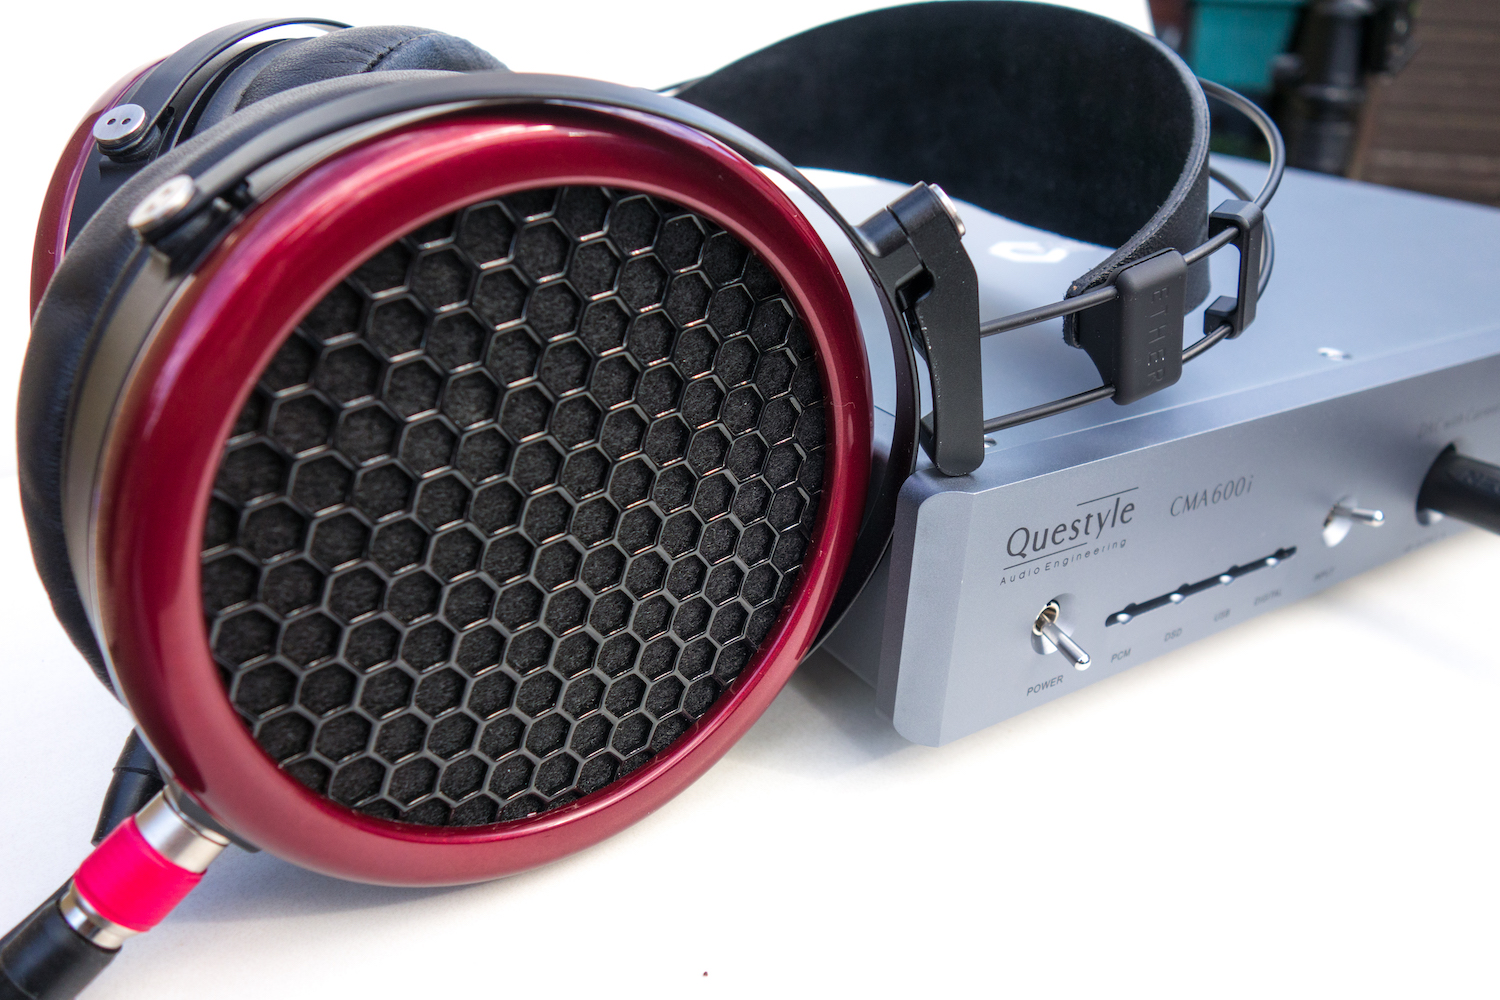 Side view of the Mr Speakers Ether headphones on top of the Questyle CMA600i headphone amp.